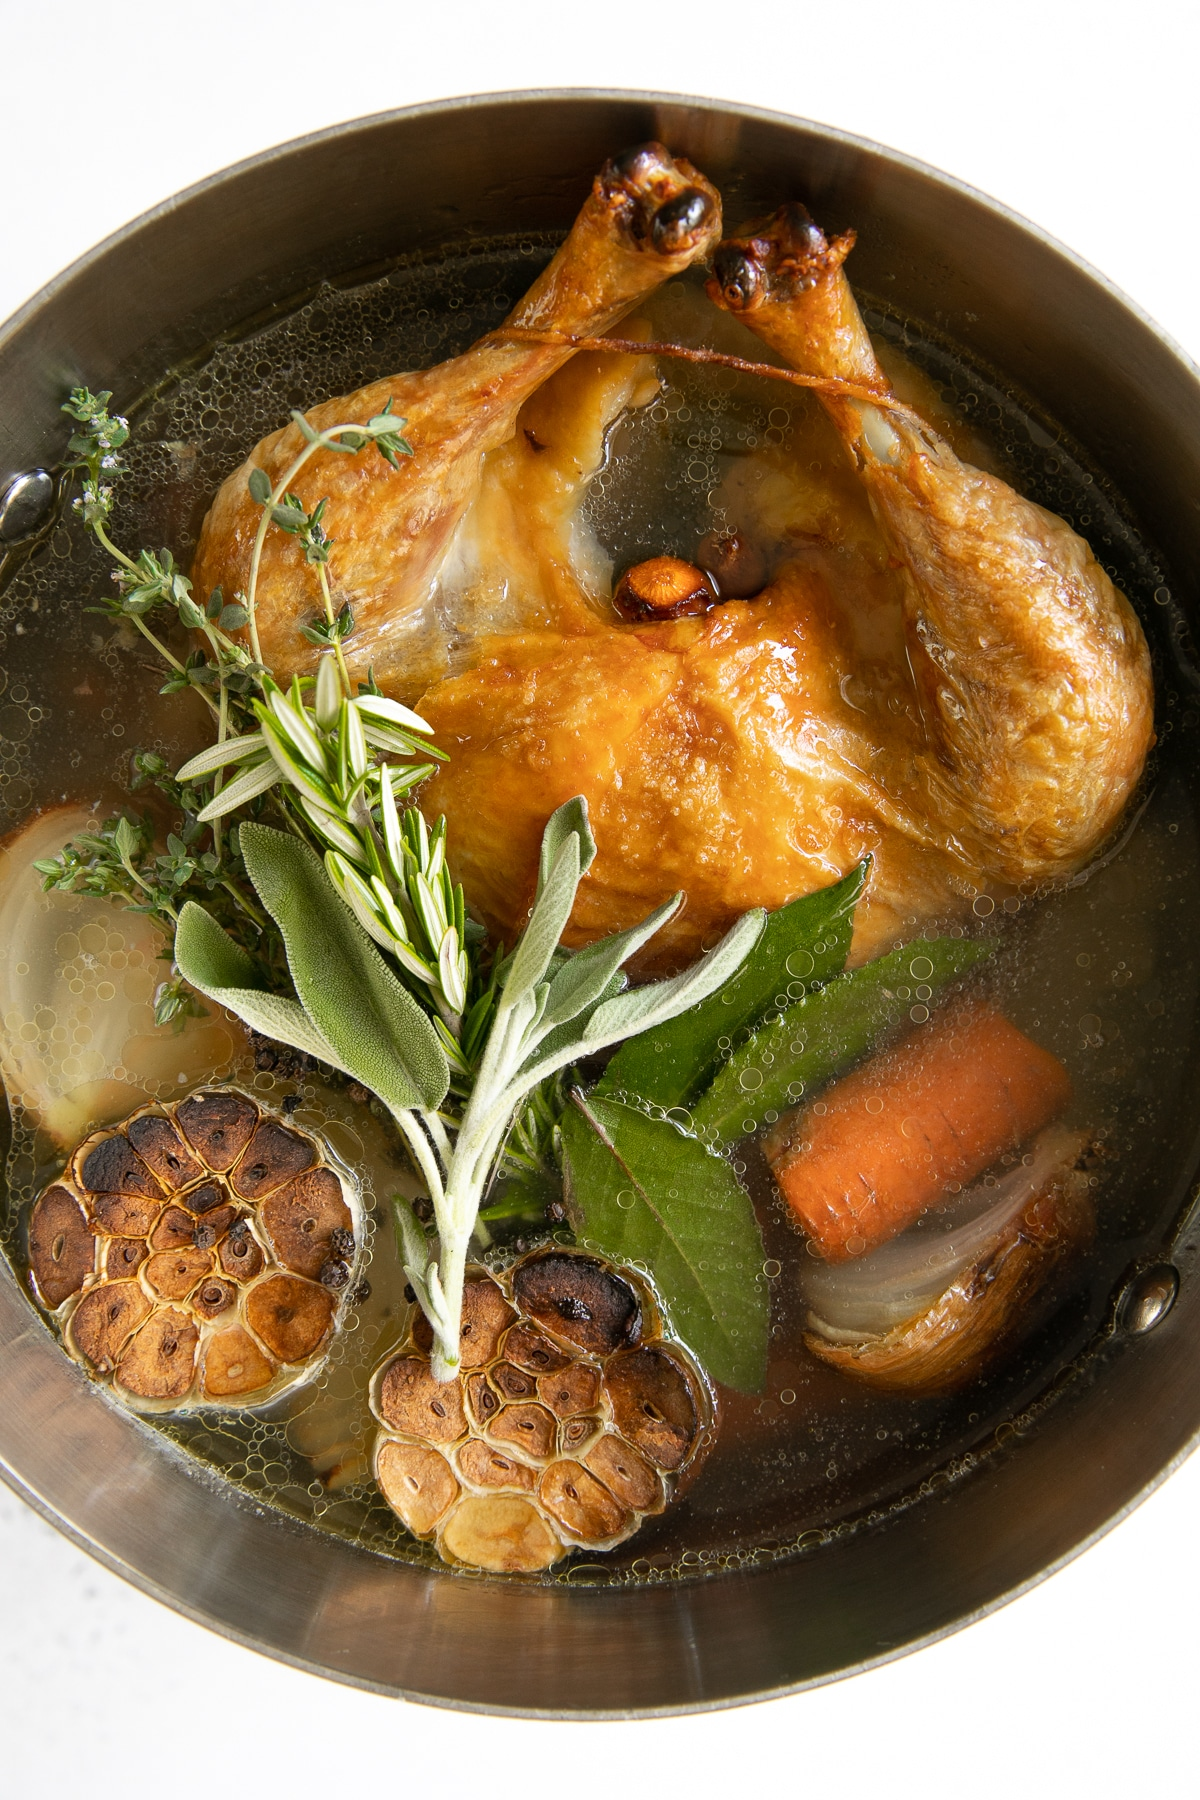 Large stock pot filled with one whole browned chicken, garlic, vegetables, and fresh herbs all covered in water.